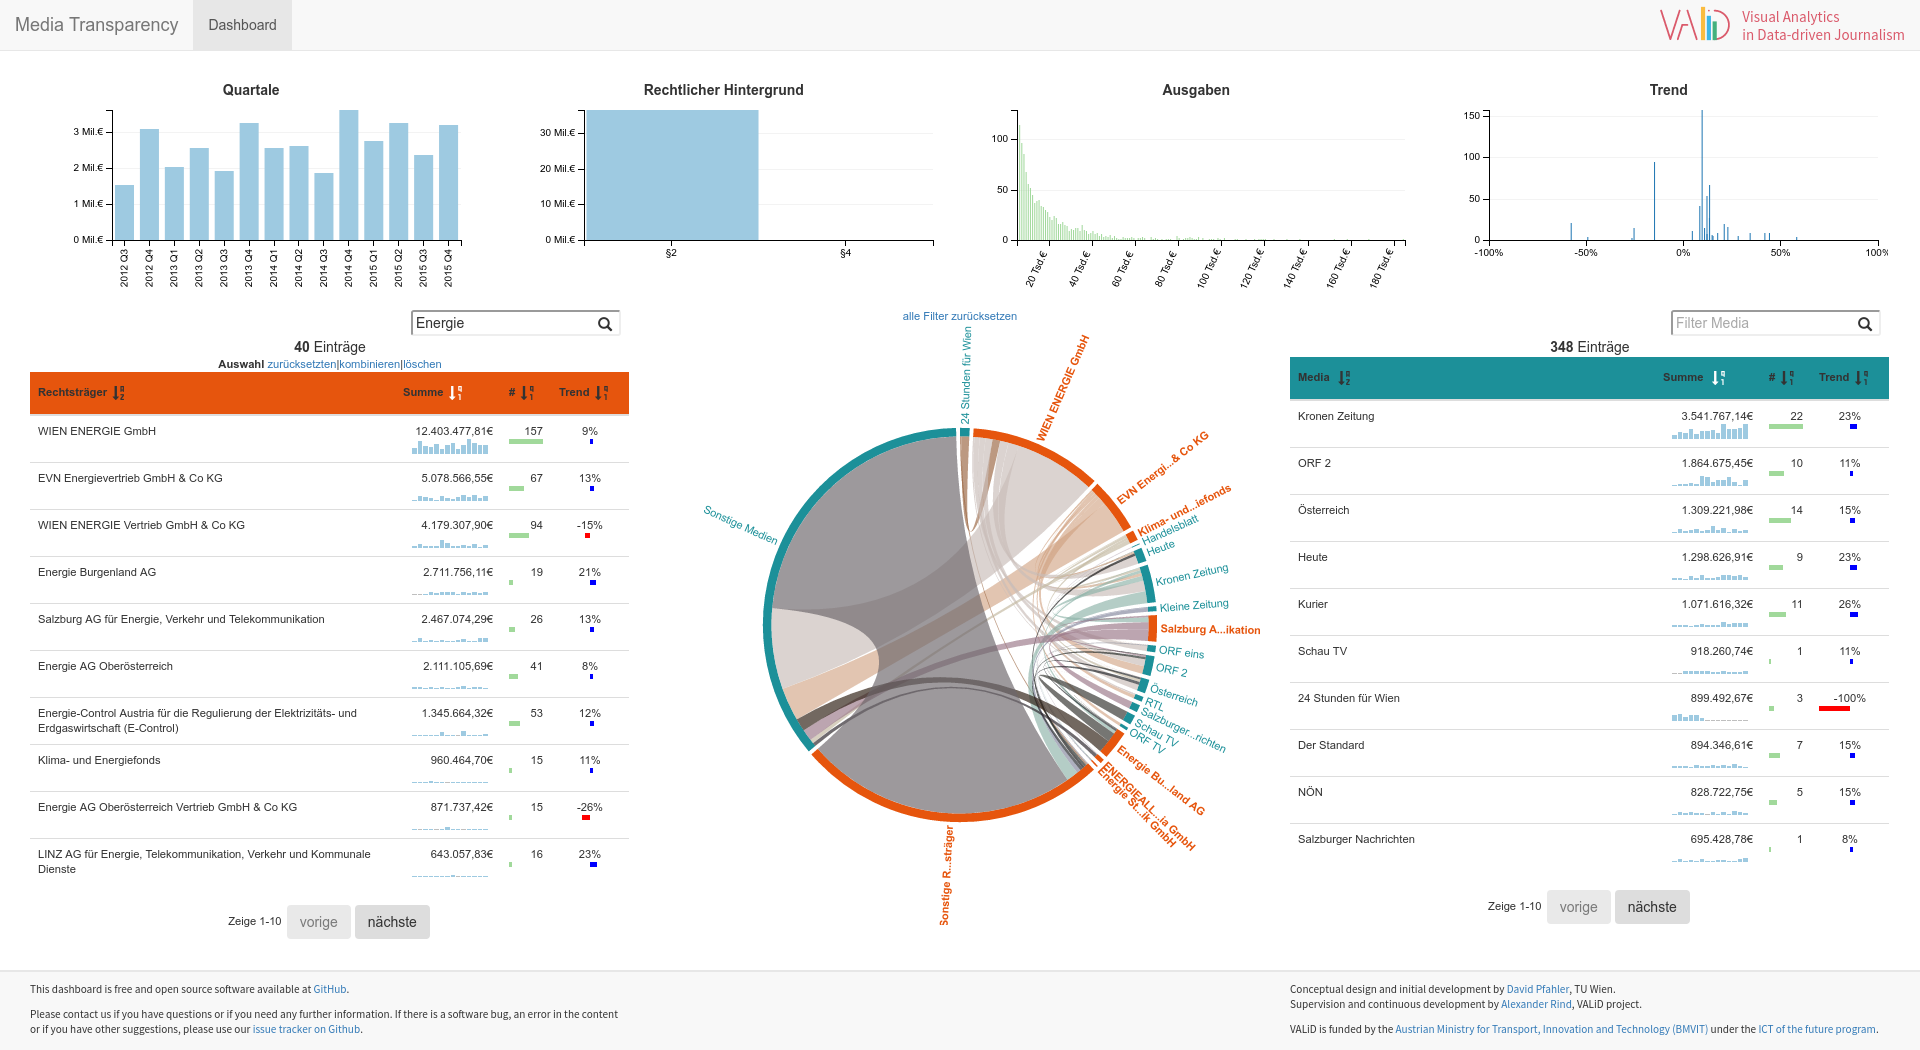 Will Data Driven Journalism Empower >> » Media Transparency Dashboard launched VALID – Visual Analytics in Data-driven Journalism